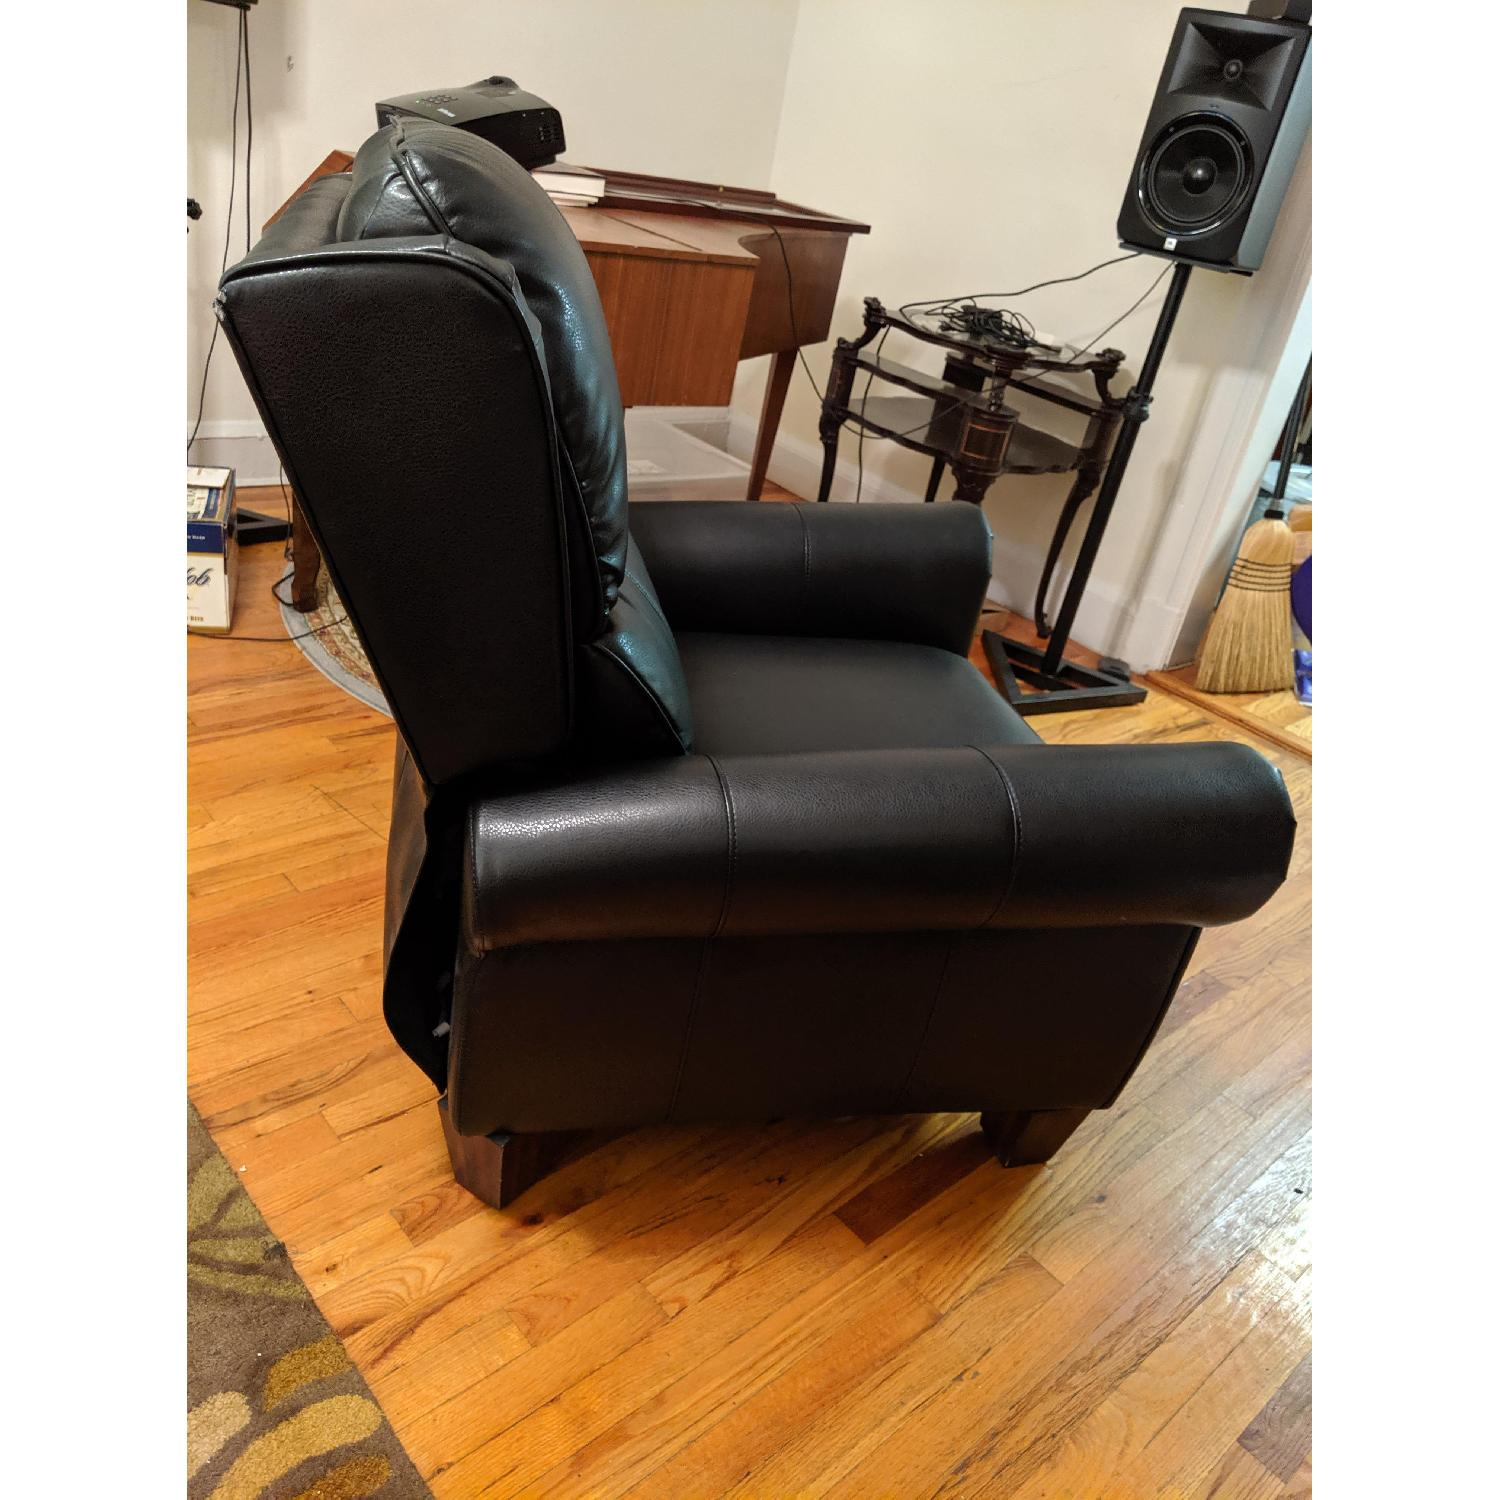 Strange Abbyson Living Whitley Black Leather Recliner Aptdeco Gmtry Best Dining Table And Chair Ideas Images Gmtryco